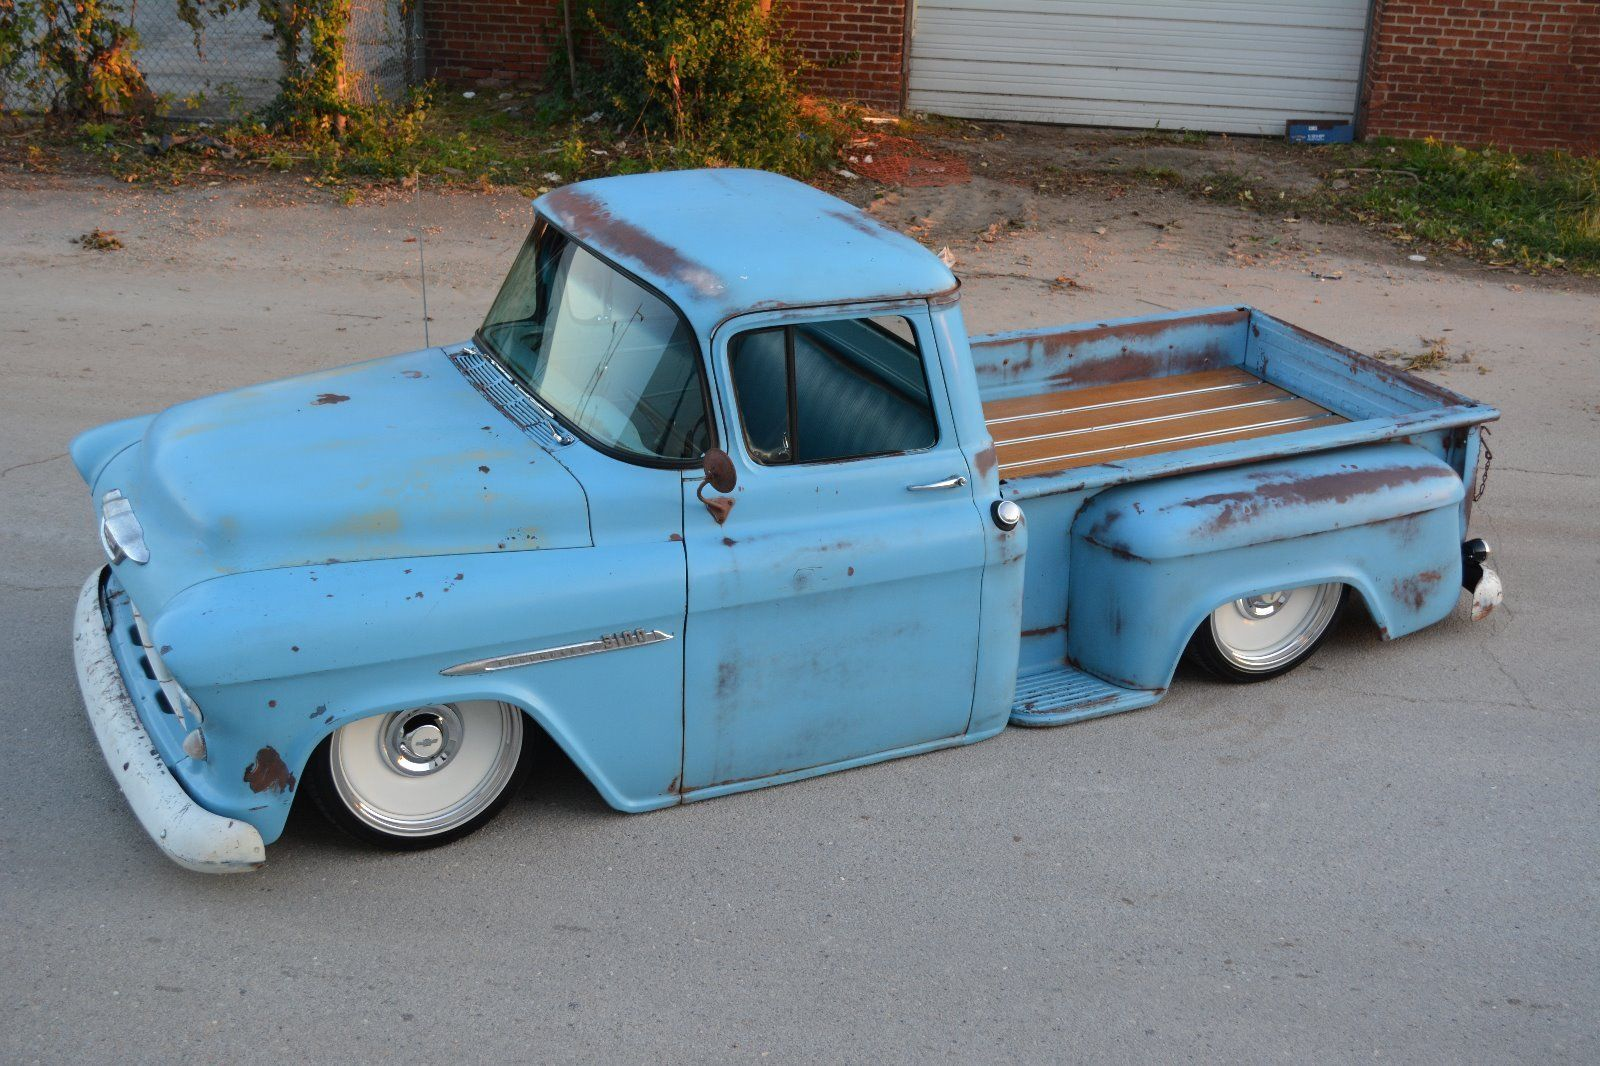 1955 Chevrolet 3100 pickup truck Air ride front and rear